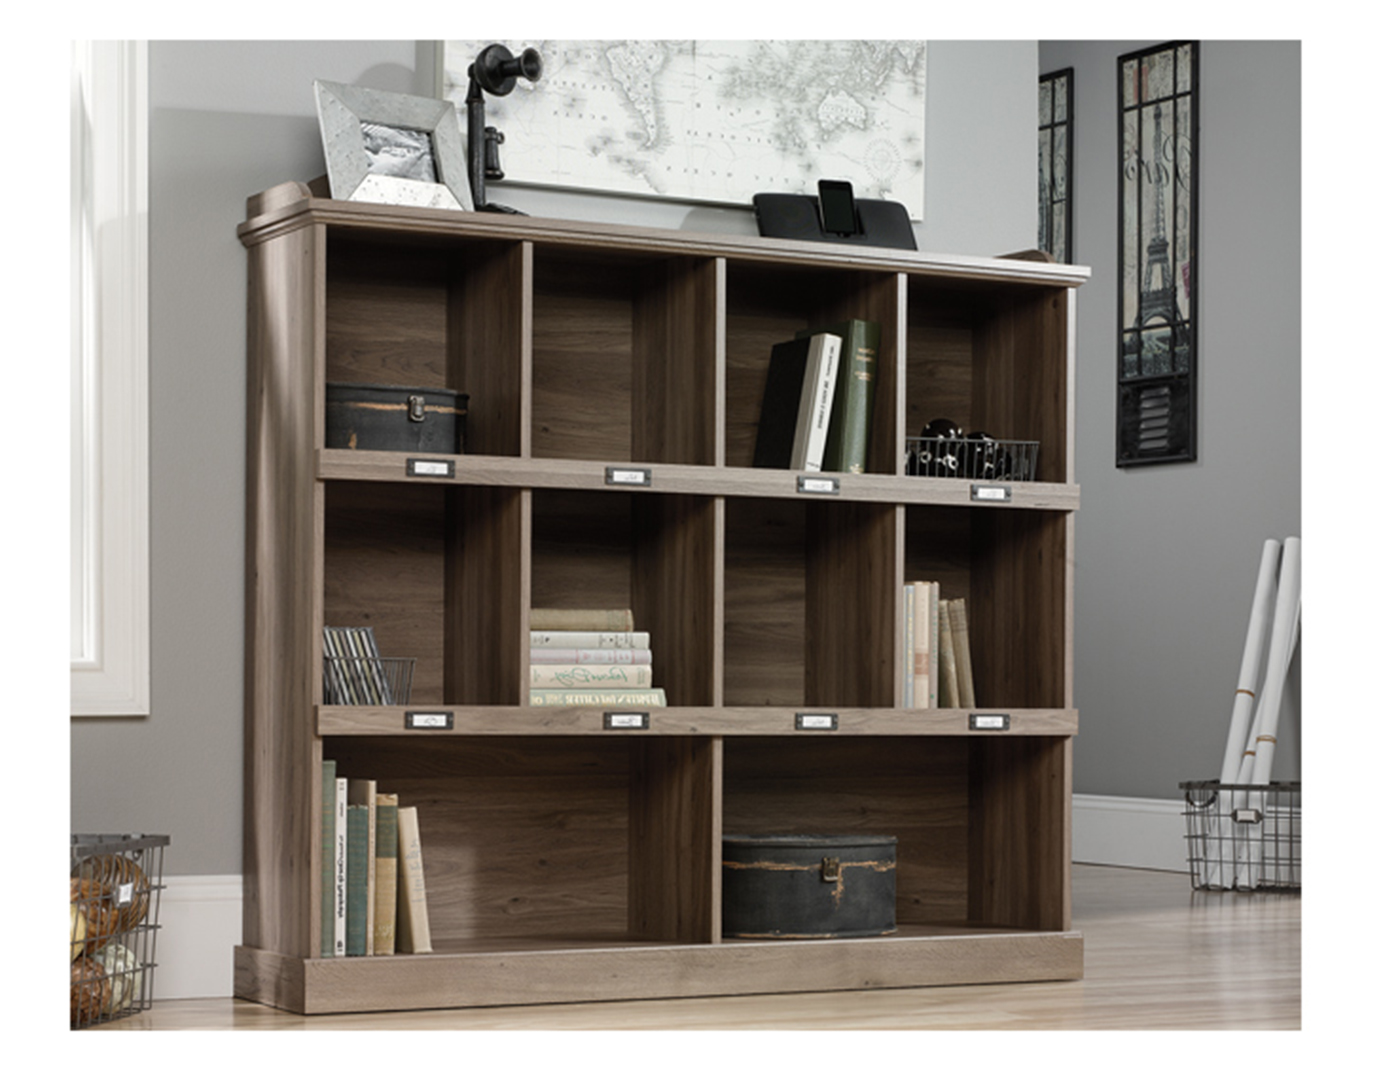 finishes com barrister bookcase walmart ip sauder lane multiple